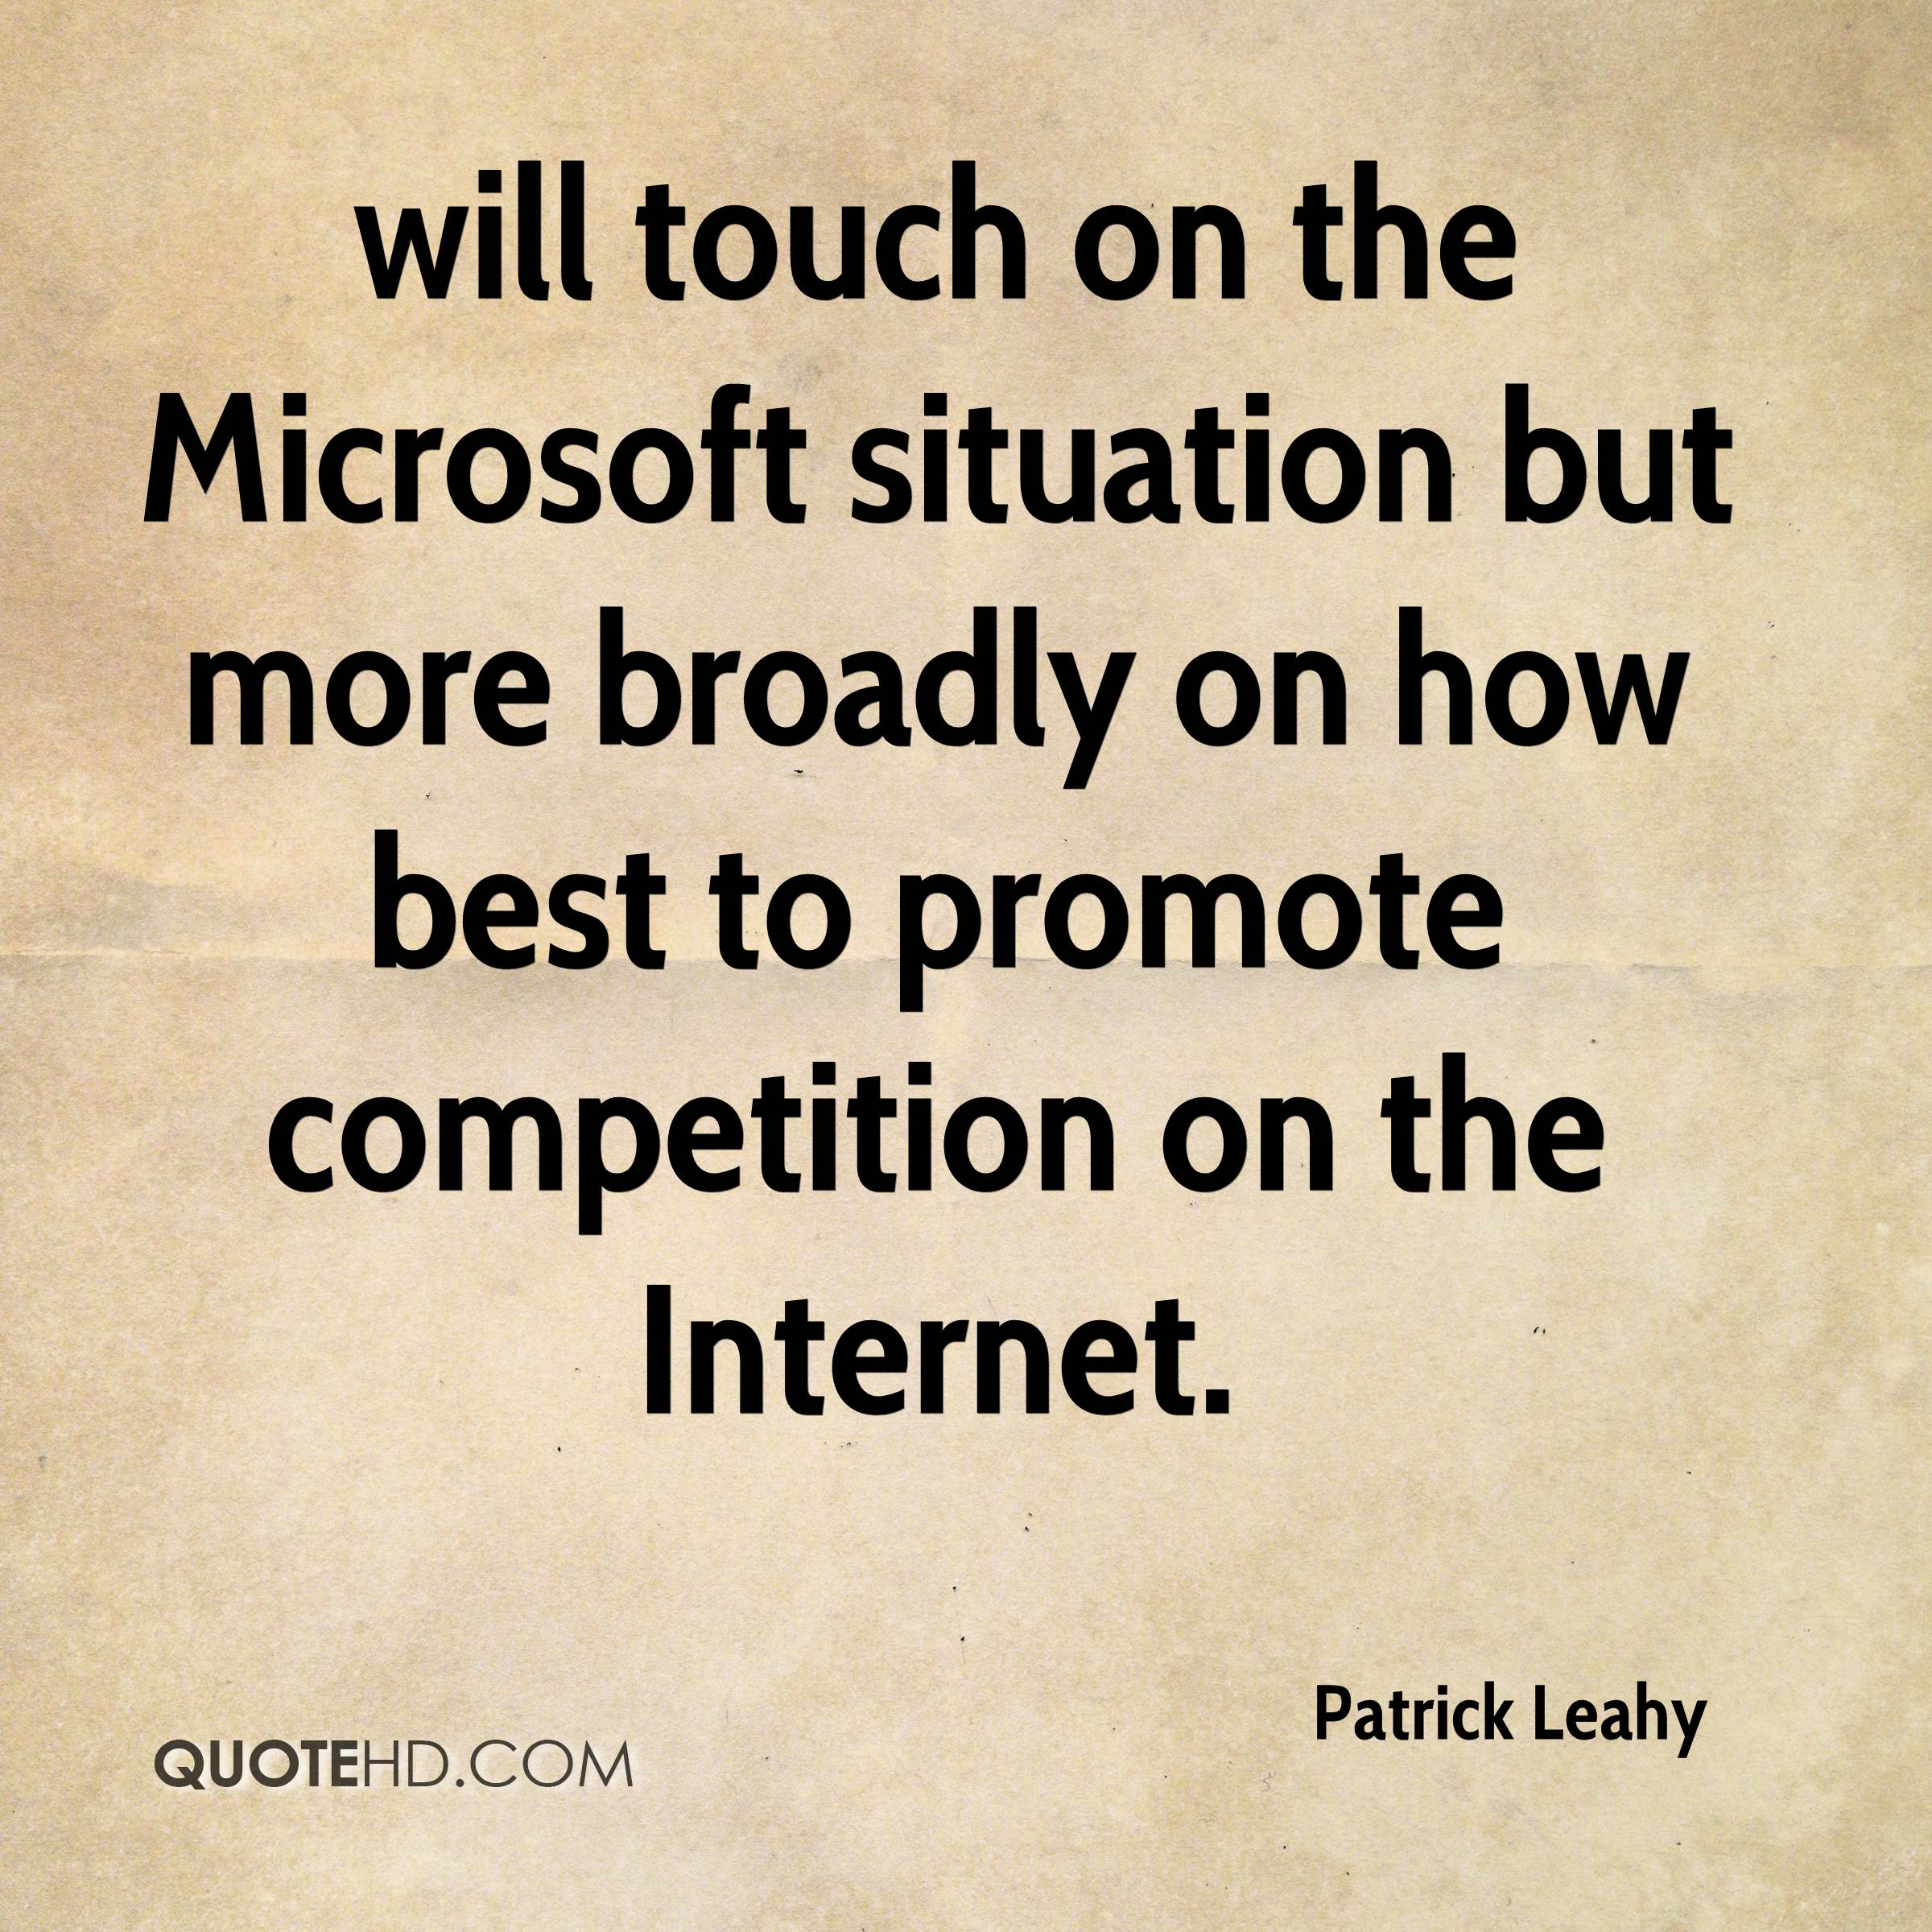 will touch on the Microsoft situation but more broadly on how best to promote competition on the Internet.